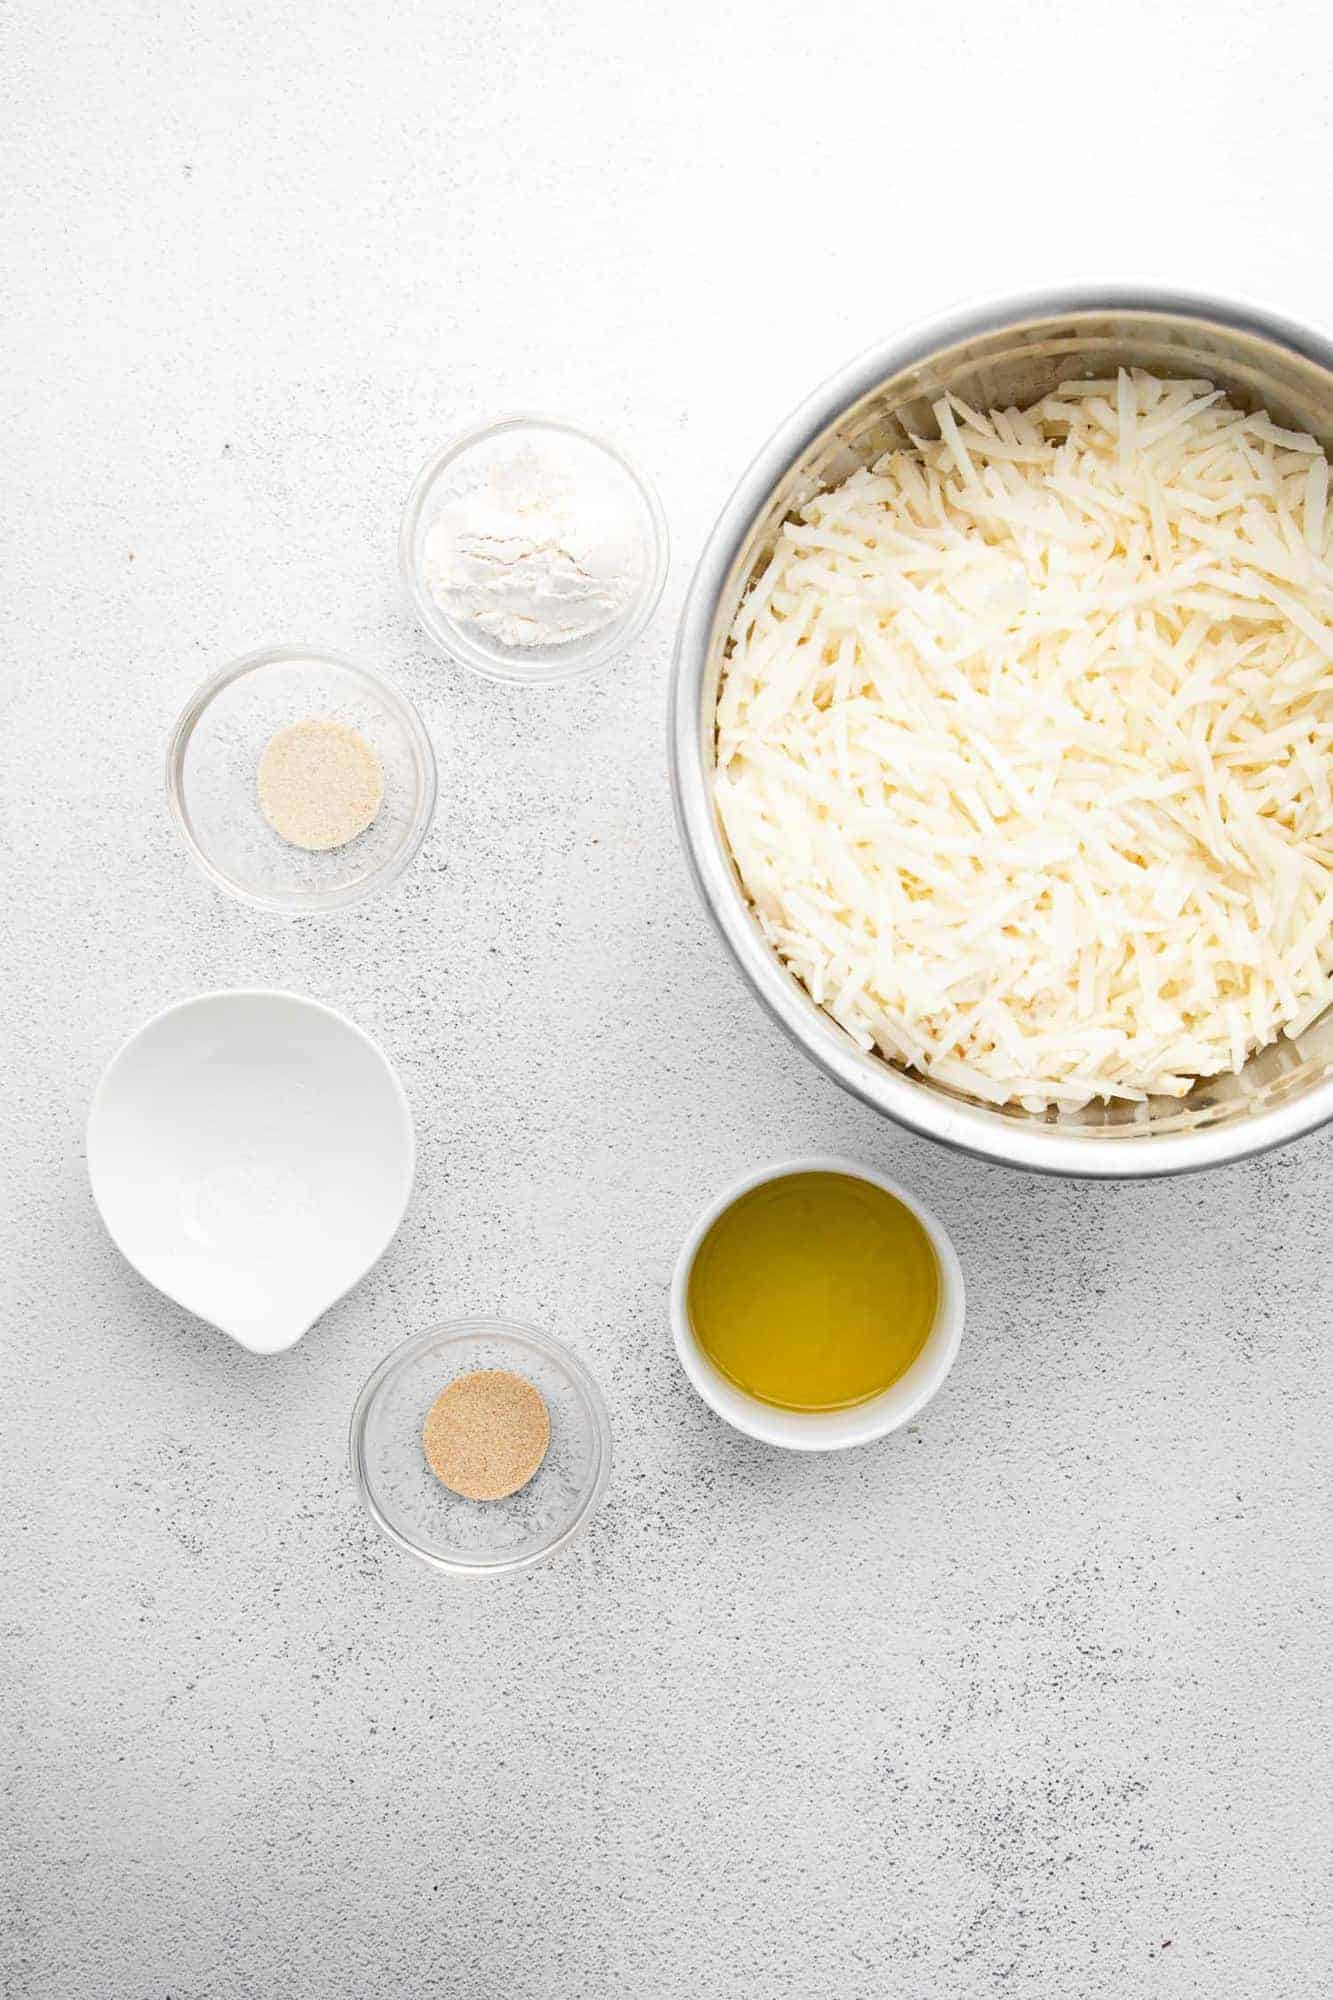 Overhead view of ingredients: shredded potatoes, olive oil, flour, and spices.